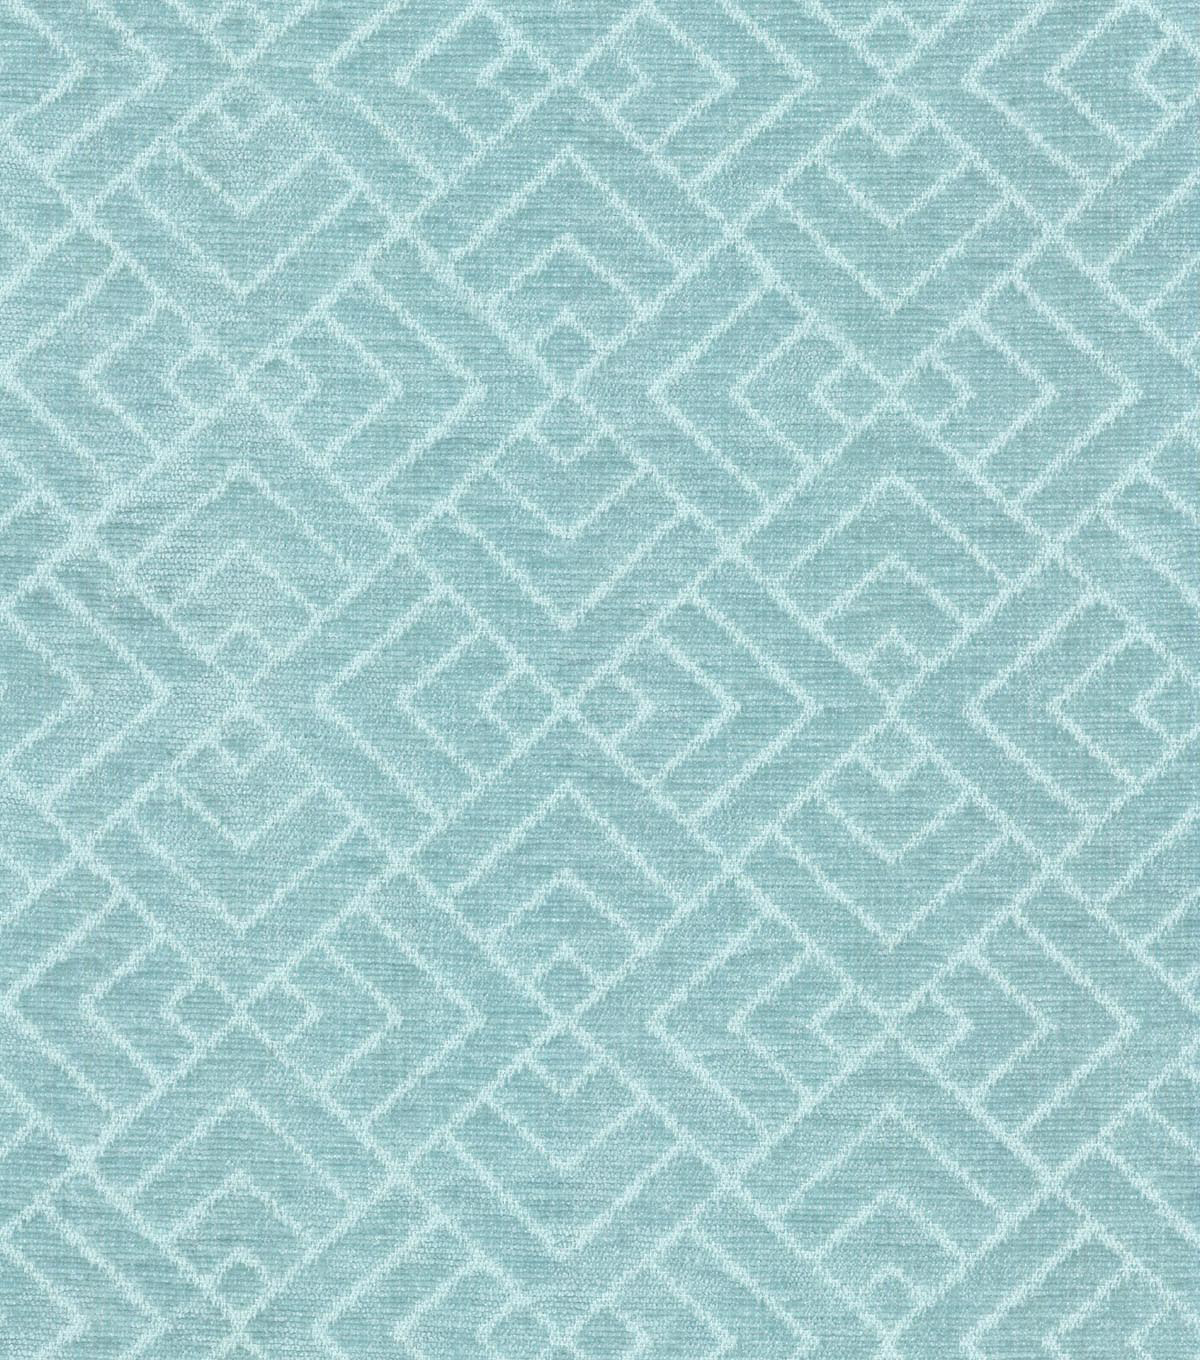 Home Decor 8\u0022x8\u0022 Swatch Fabric-IMAN Home Tambal Lattice Oasis